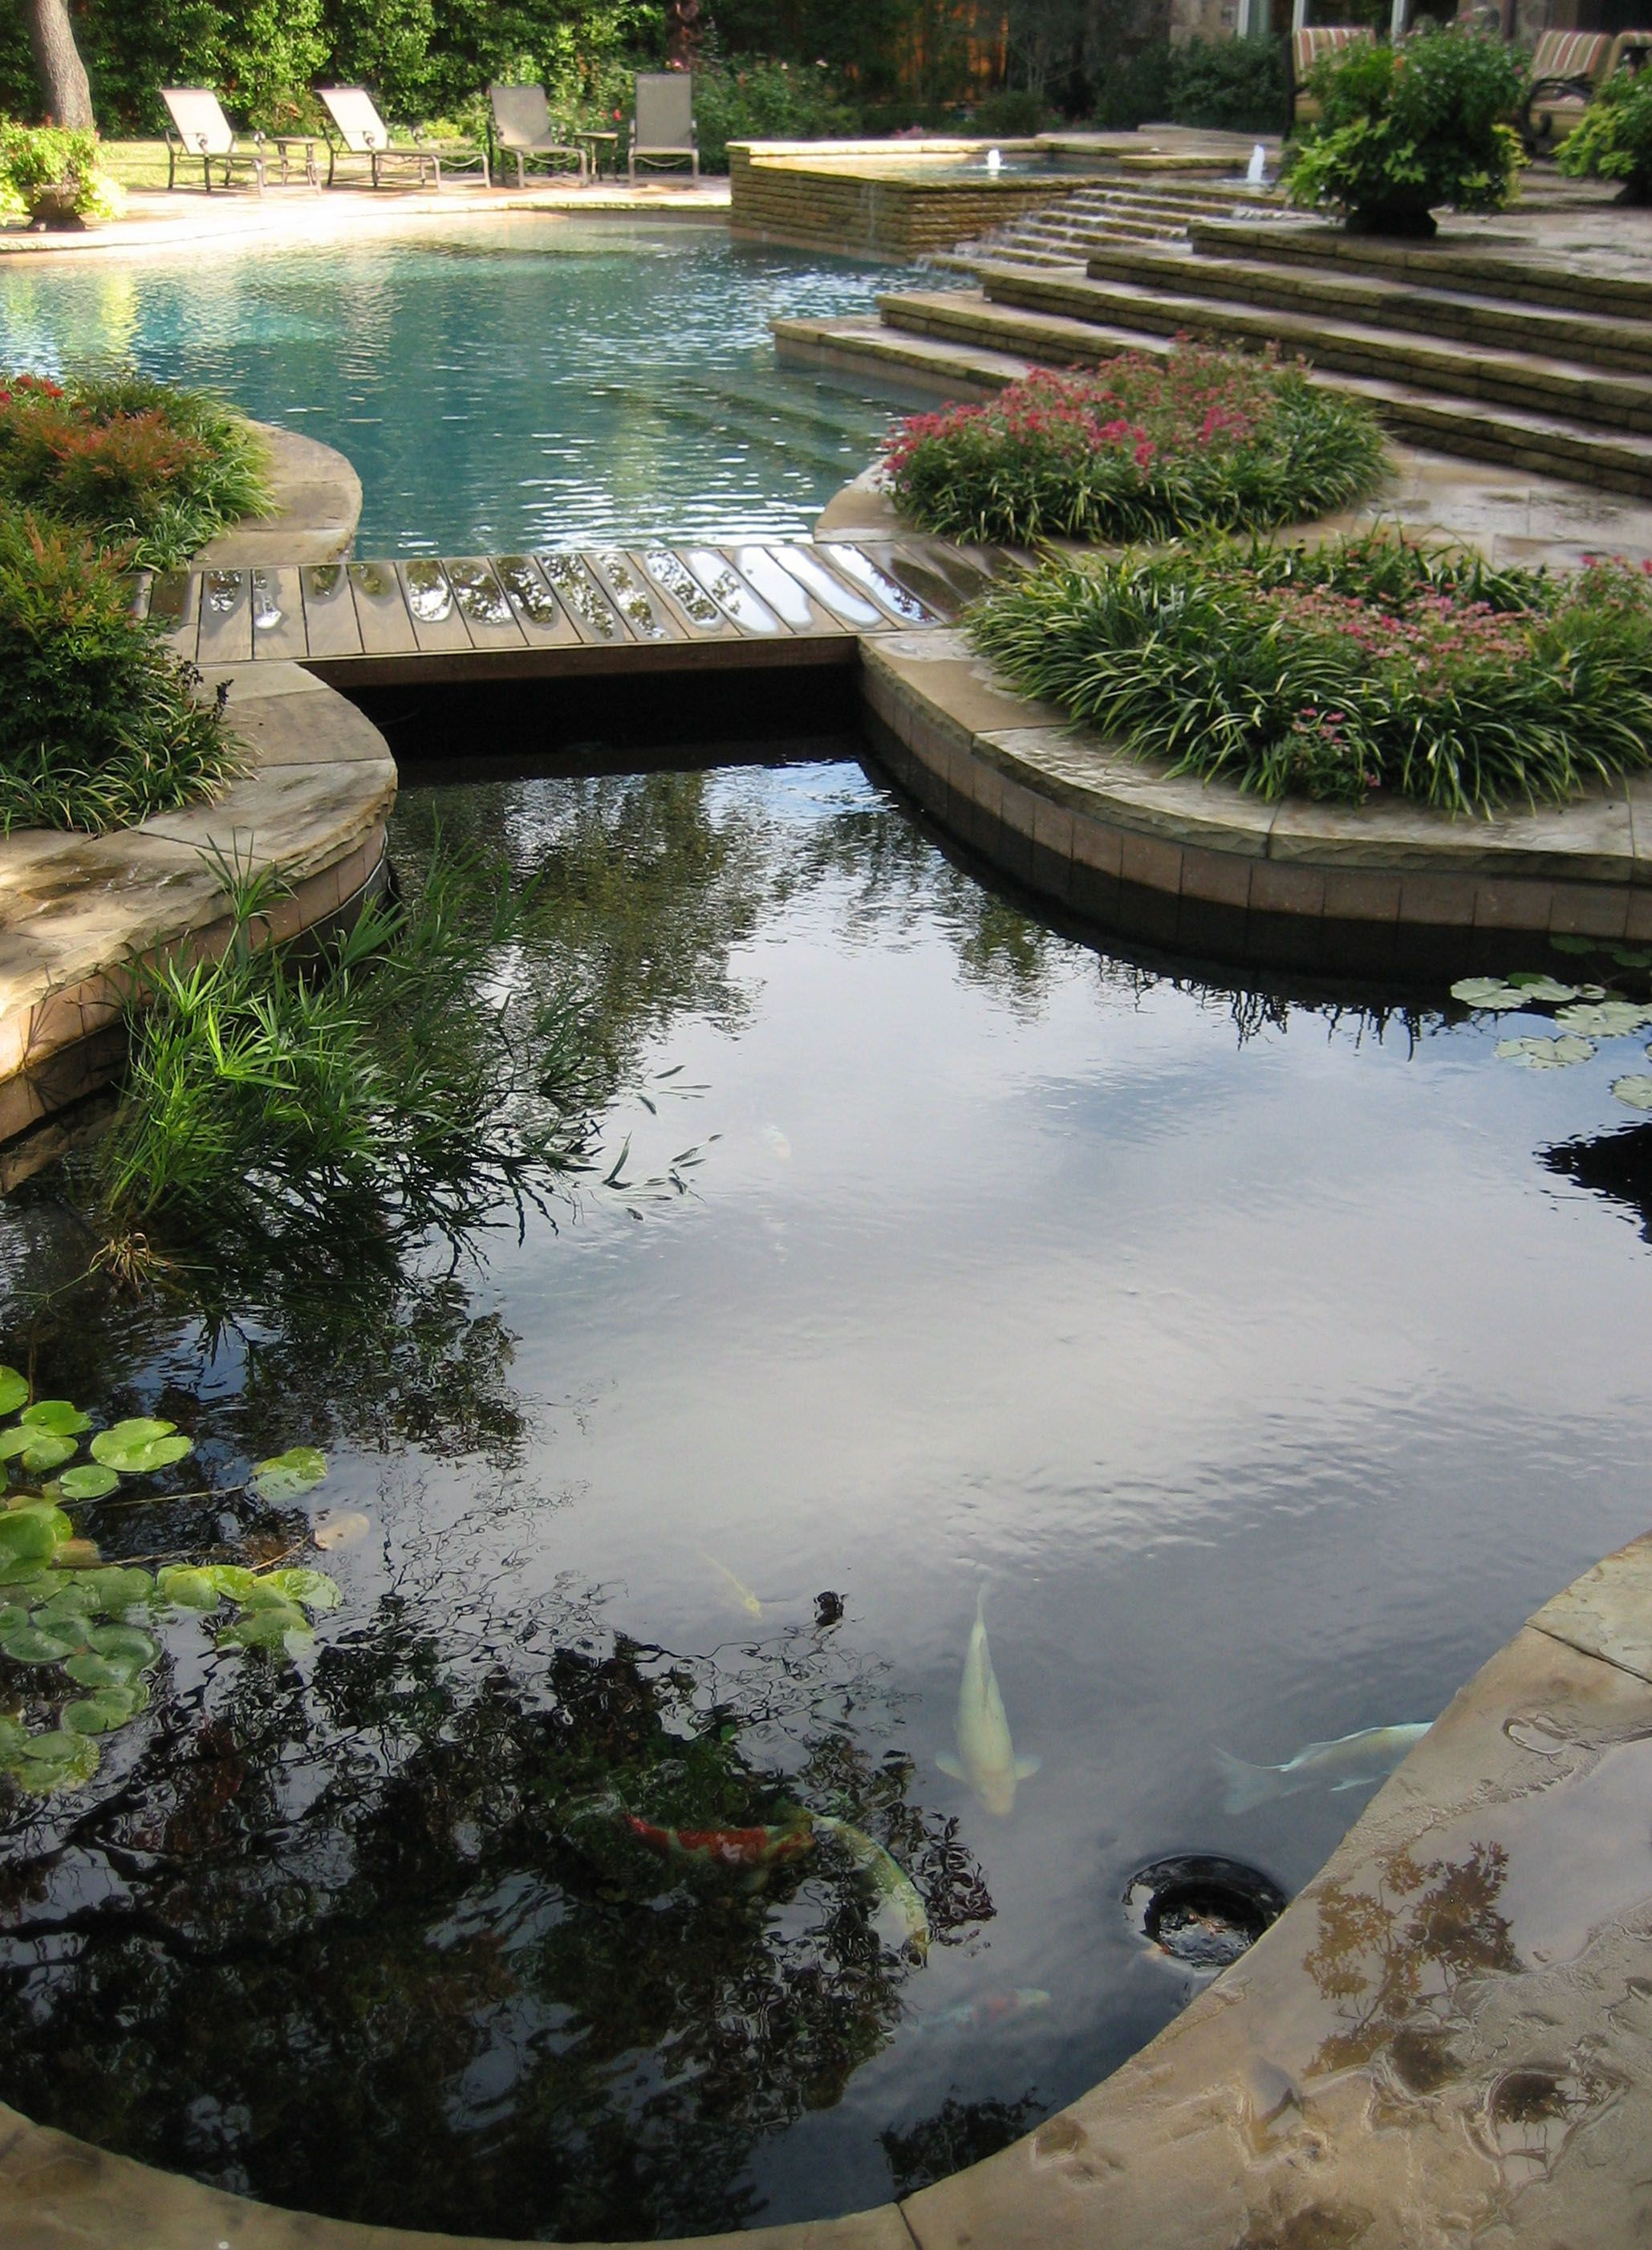 Koi pond and pool design with hidden barrier underneath for Concrete koi pond design